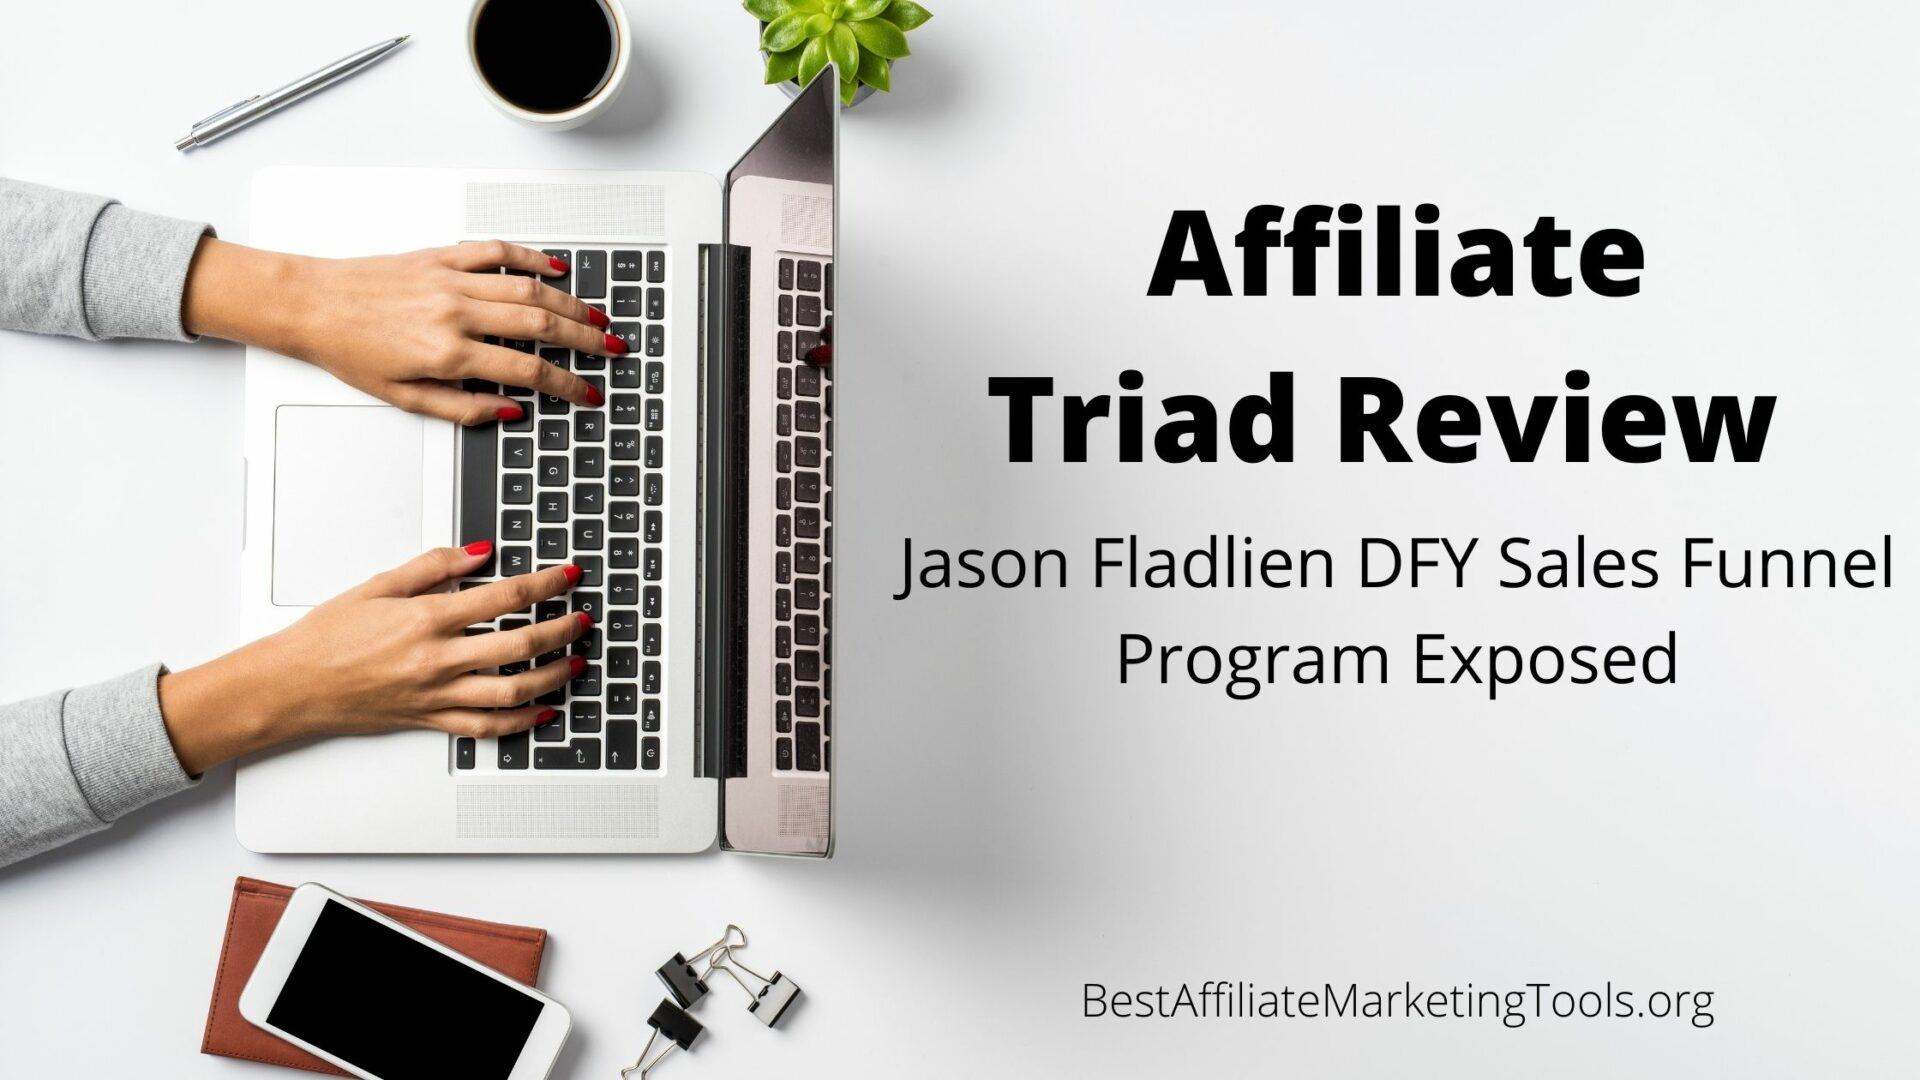 Affiliate Triad Review